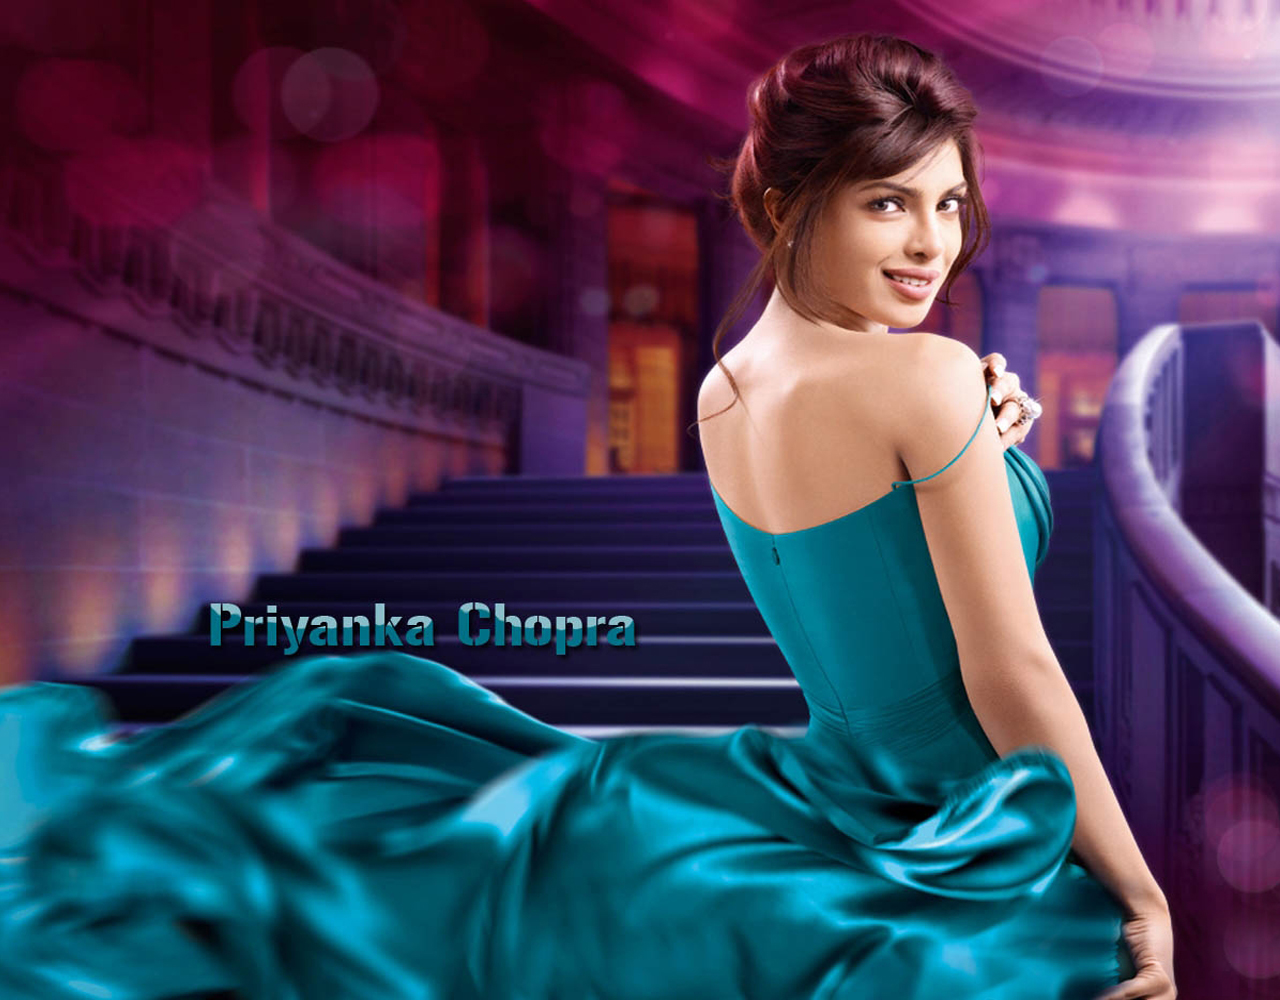 Priyanka chopra blackless wallpaper